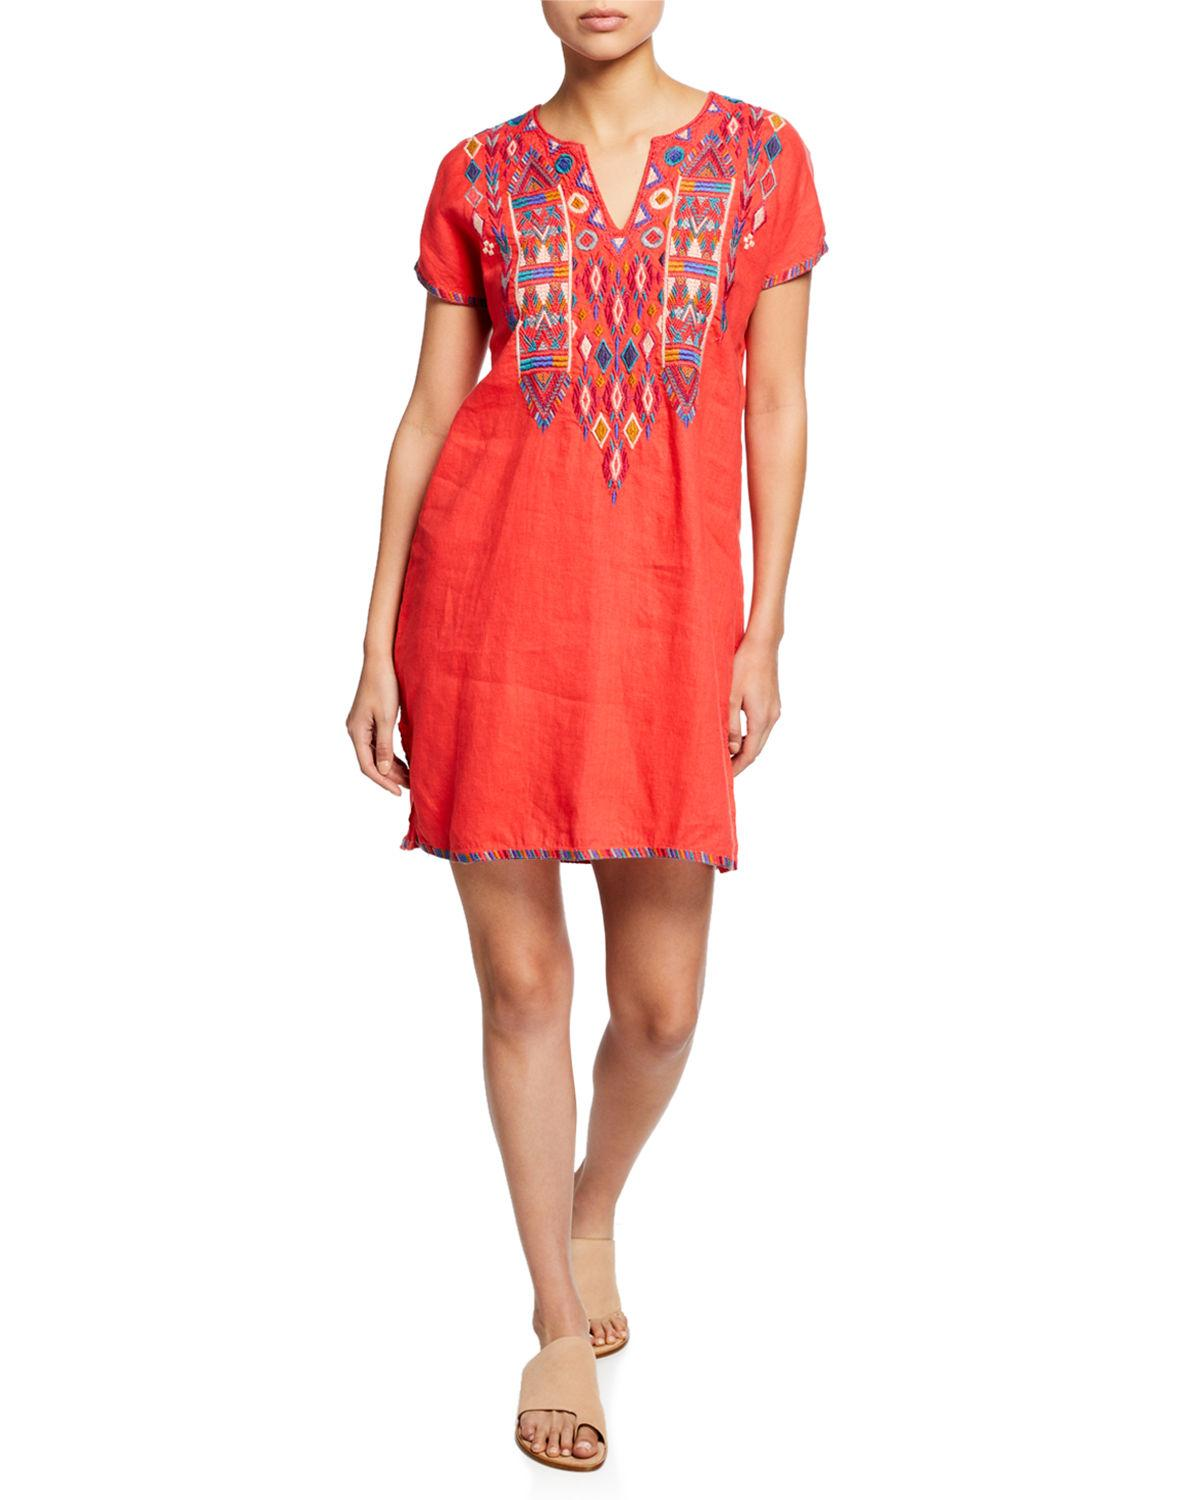 06481dab7c4 Johnny Was. Women's Plus Size Etienne Embroidered Short-sleeve Easy Linen Tunic  Dress